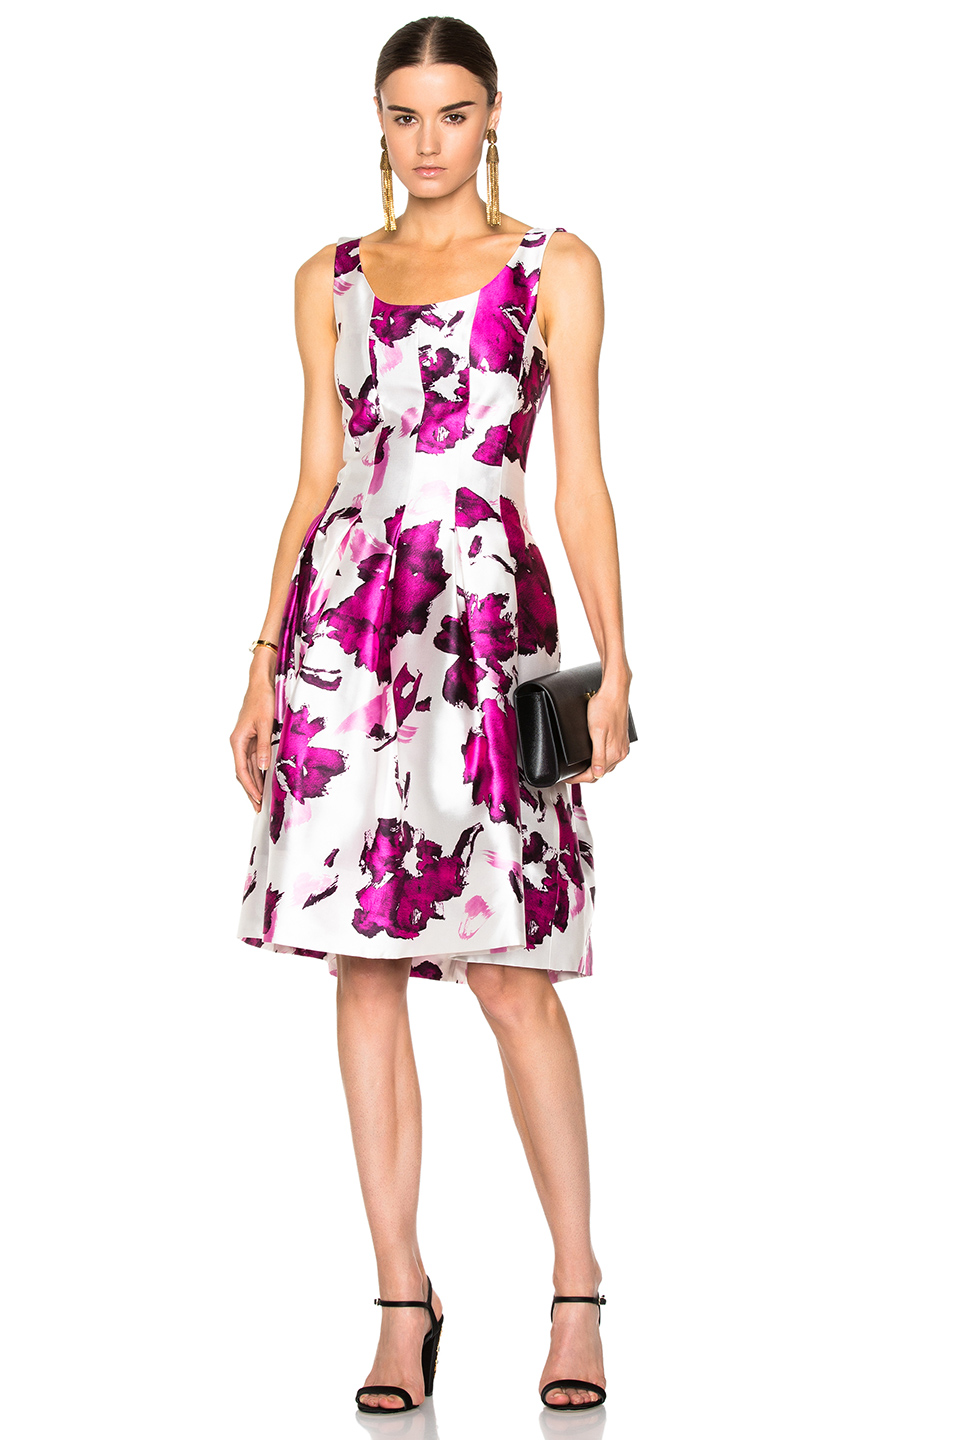 OSCAR DE LA RENTA Watercolor Floral-Print Mikado Cocktail Dress, Magenta